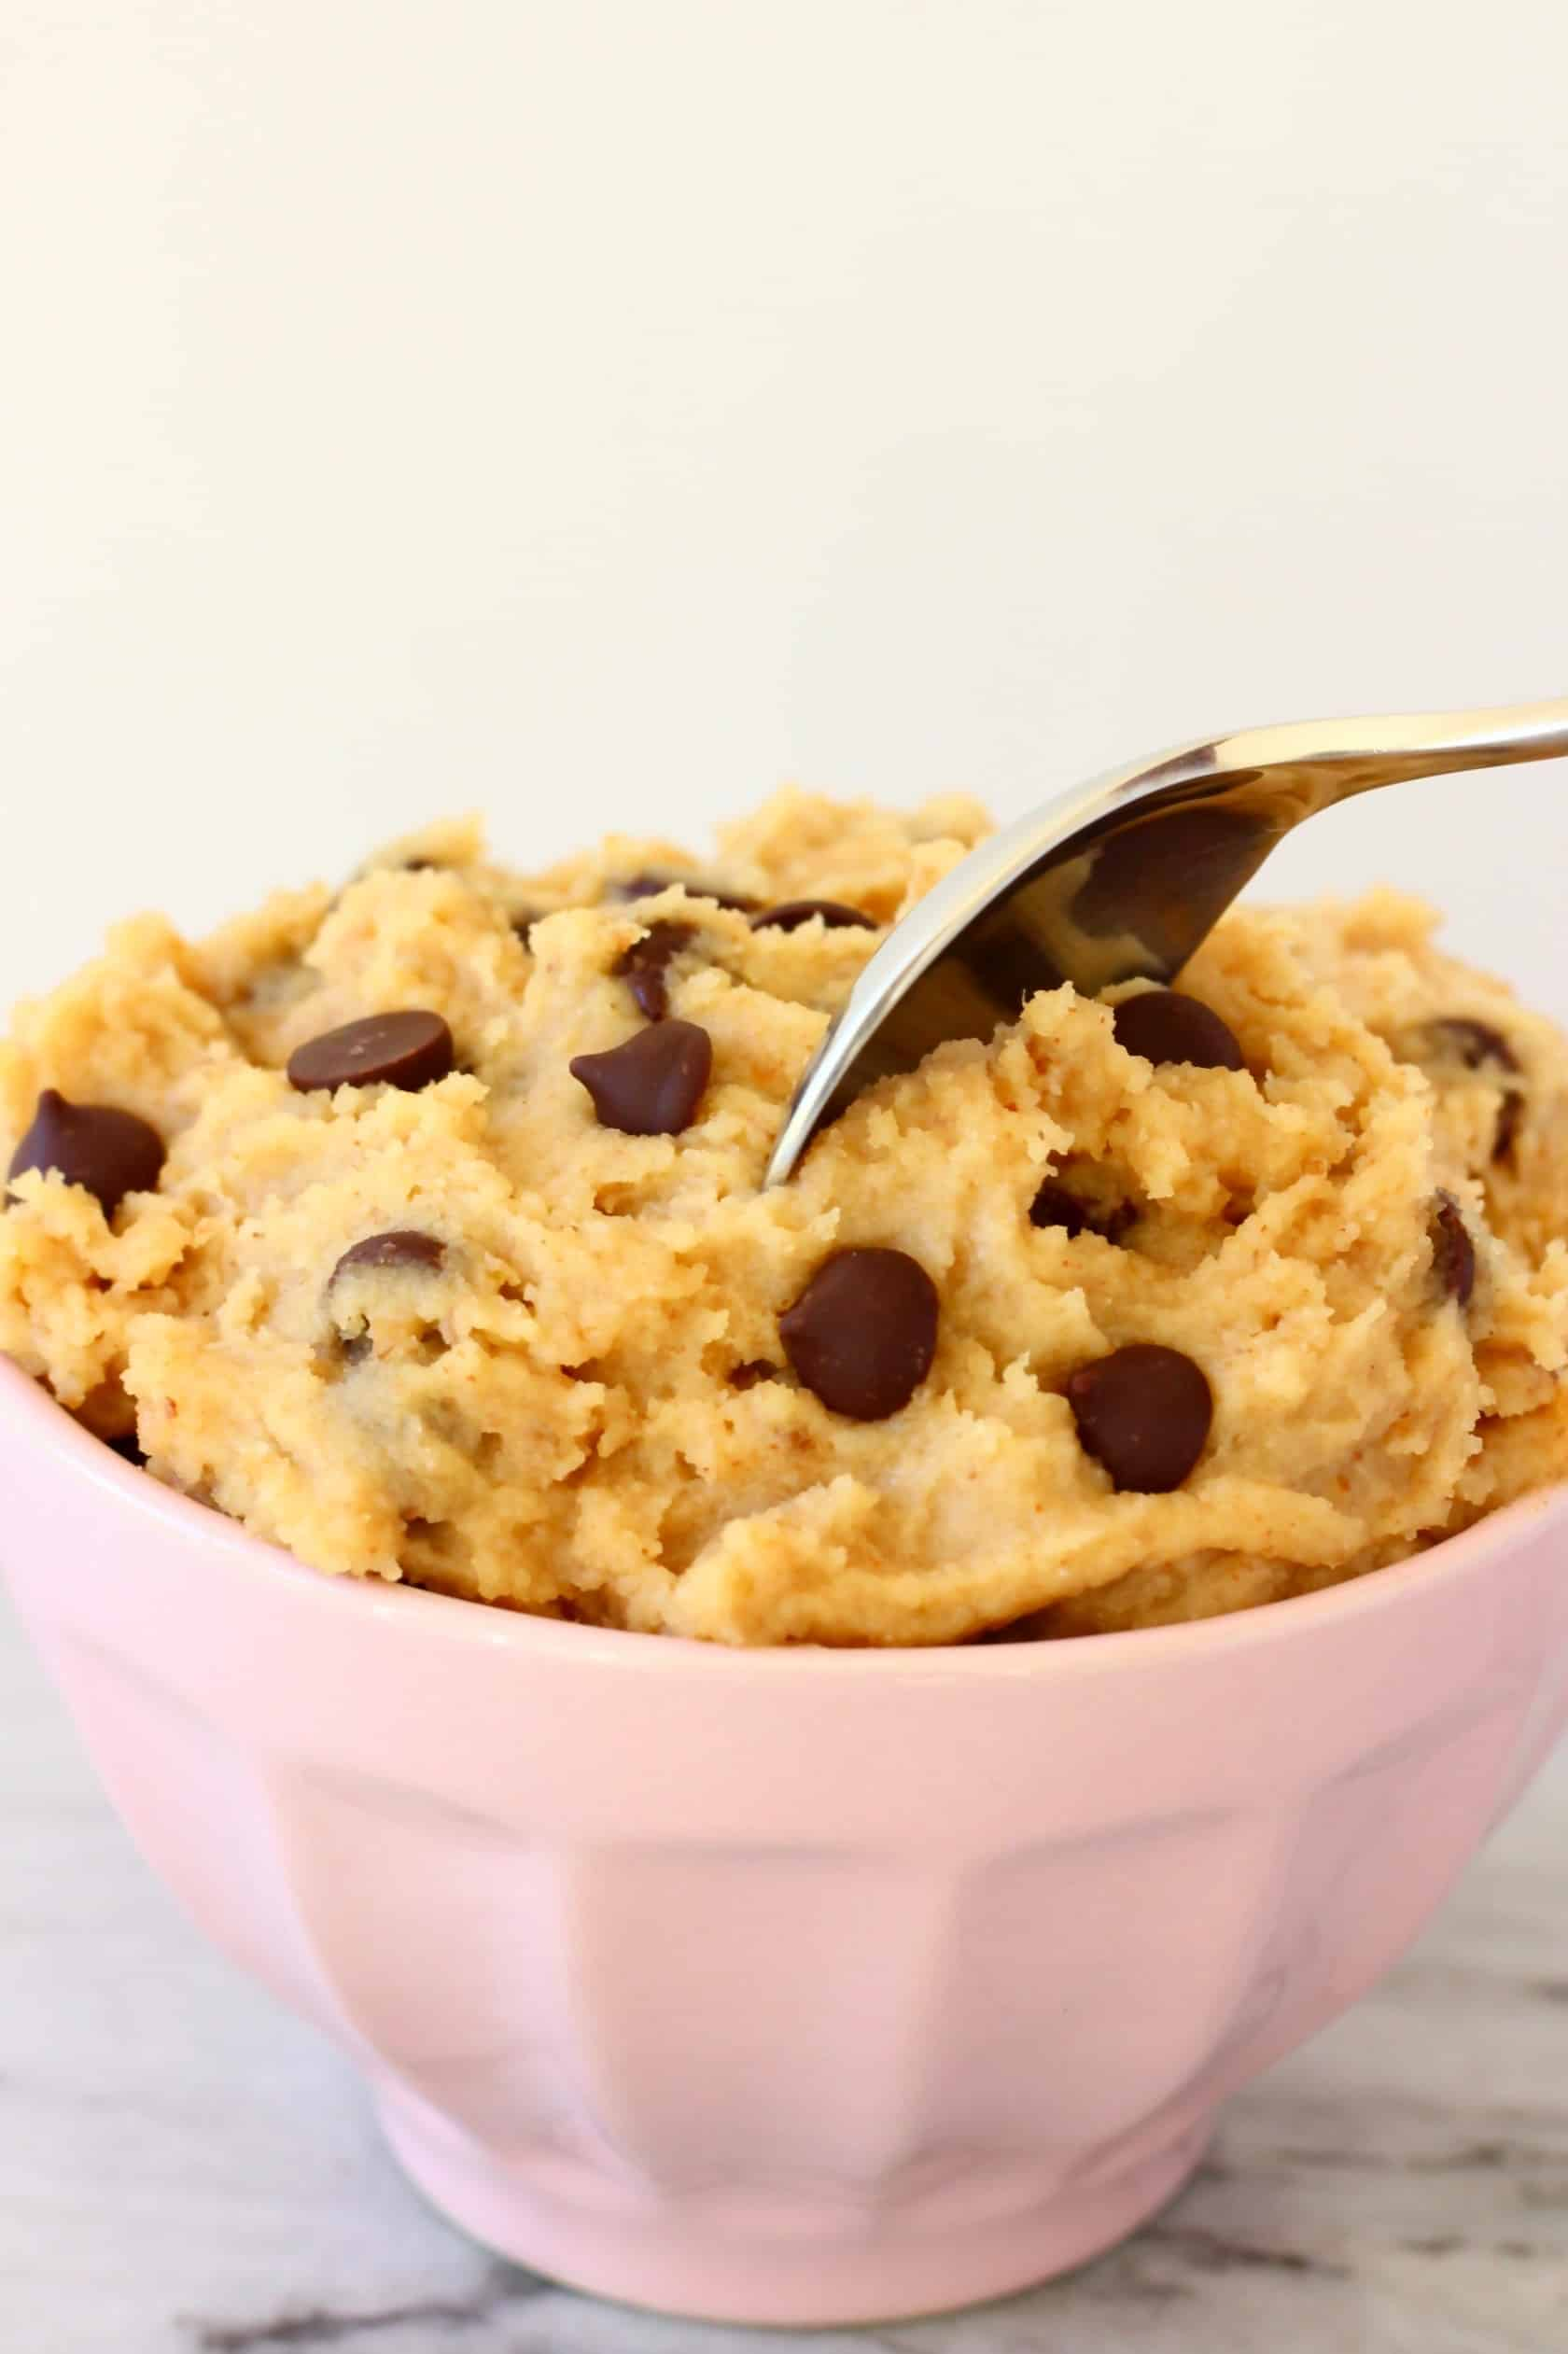 Vegan cookie dough with chocolate chips in a bowl with a spoon sticking into it